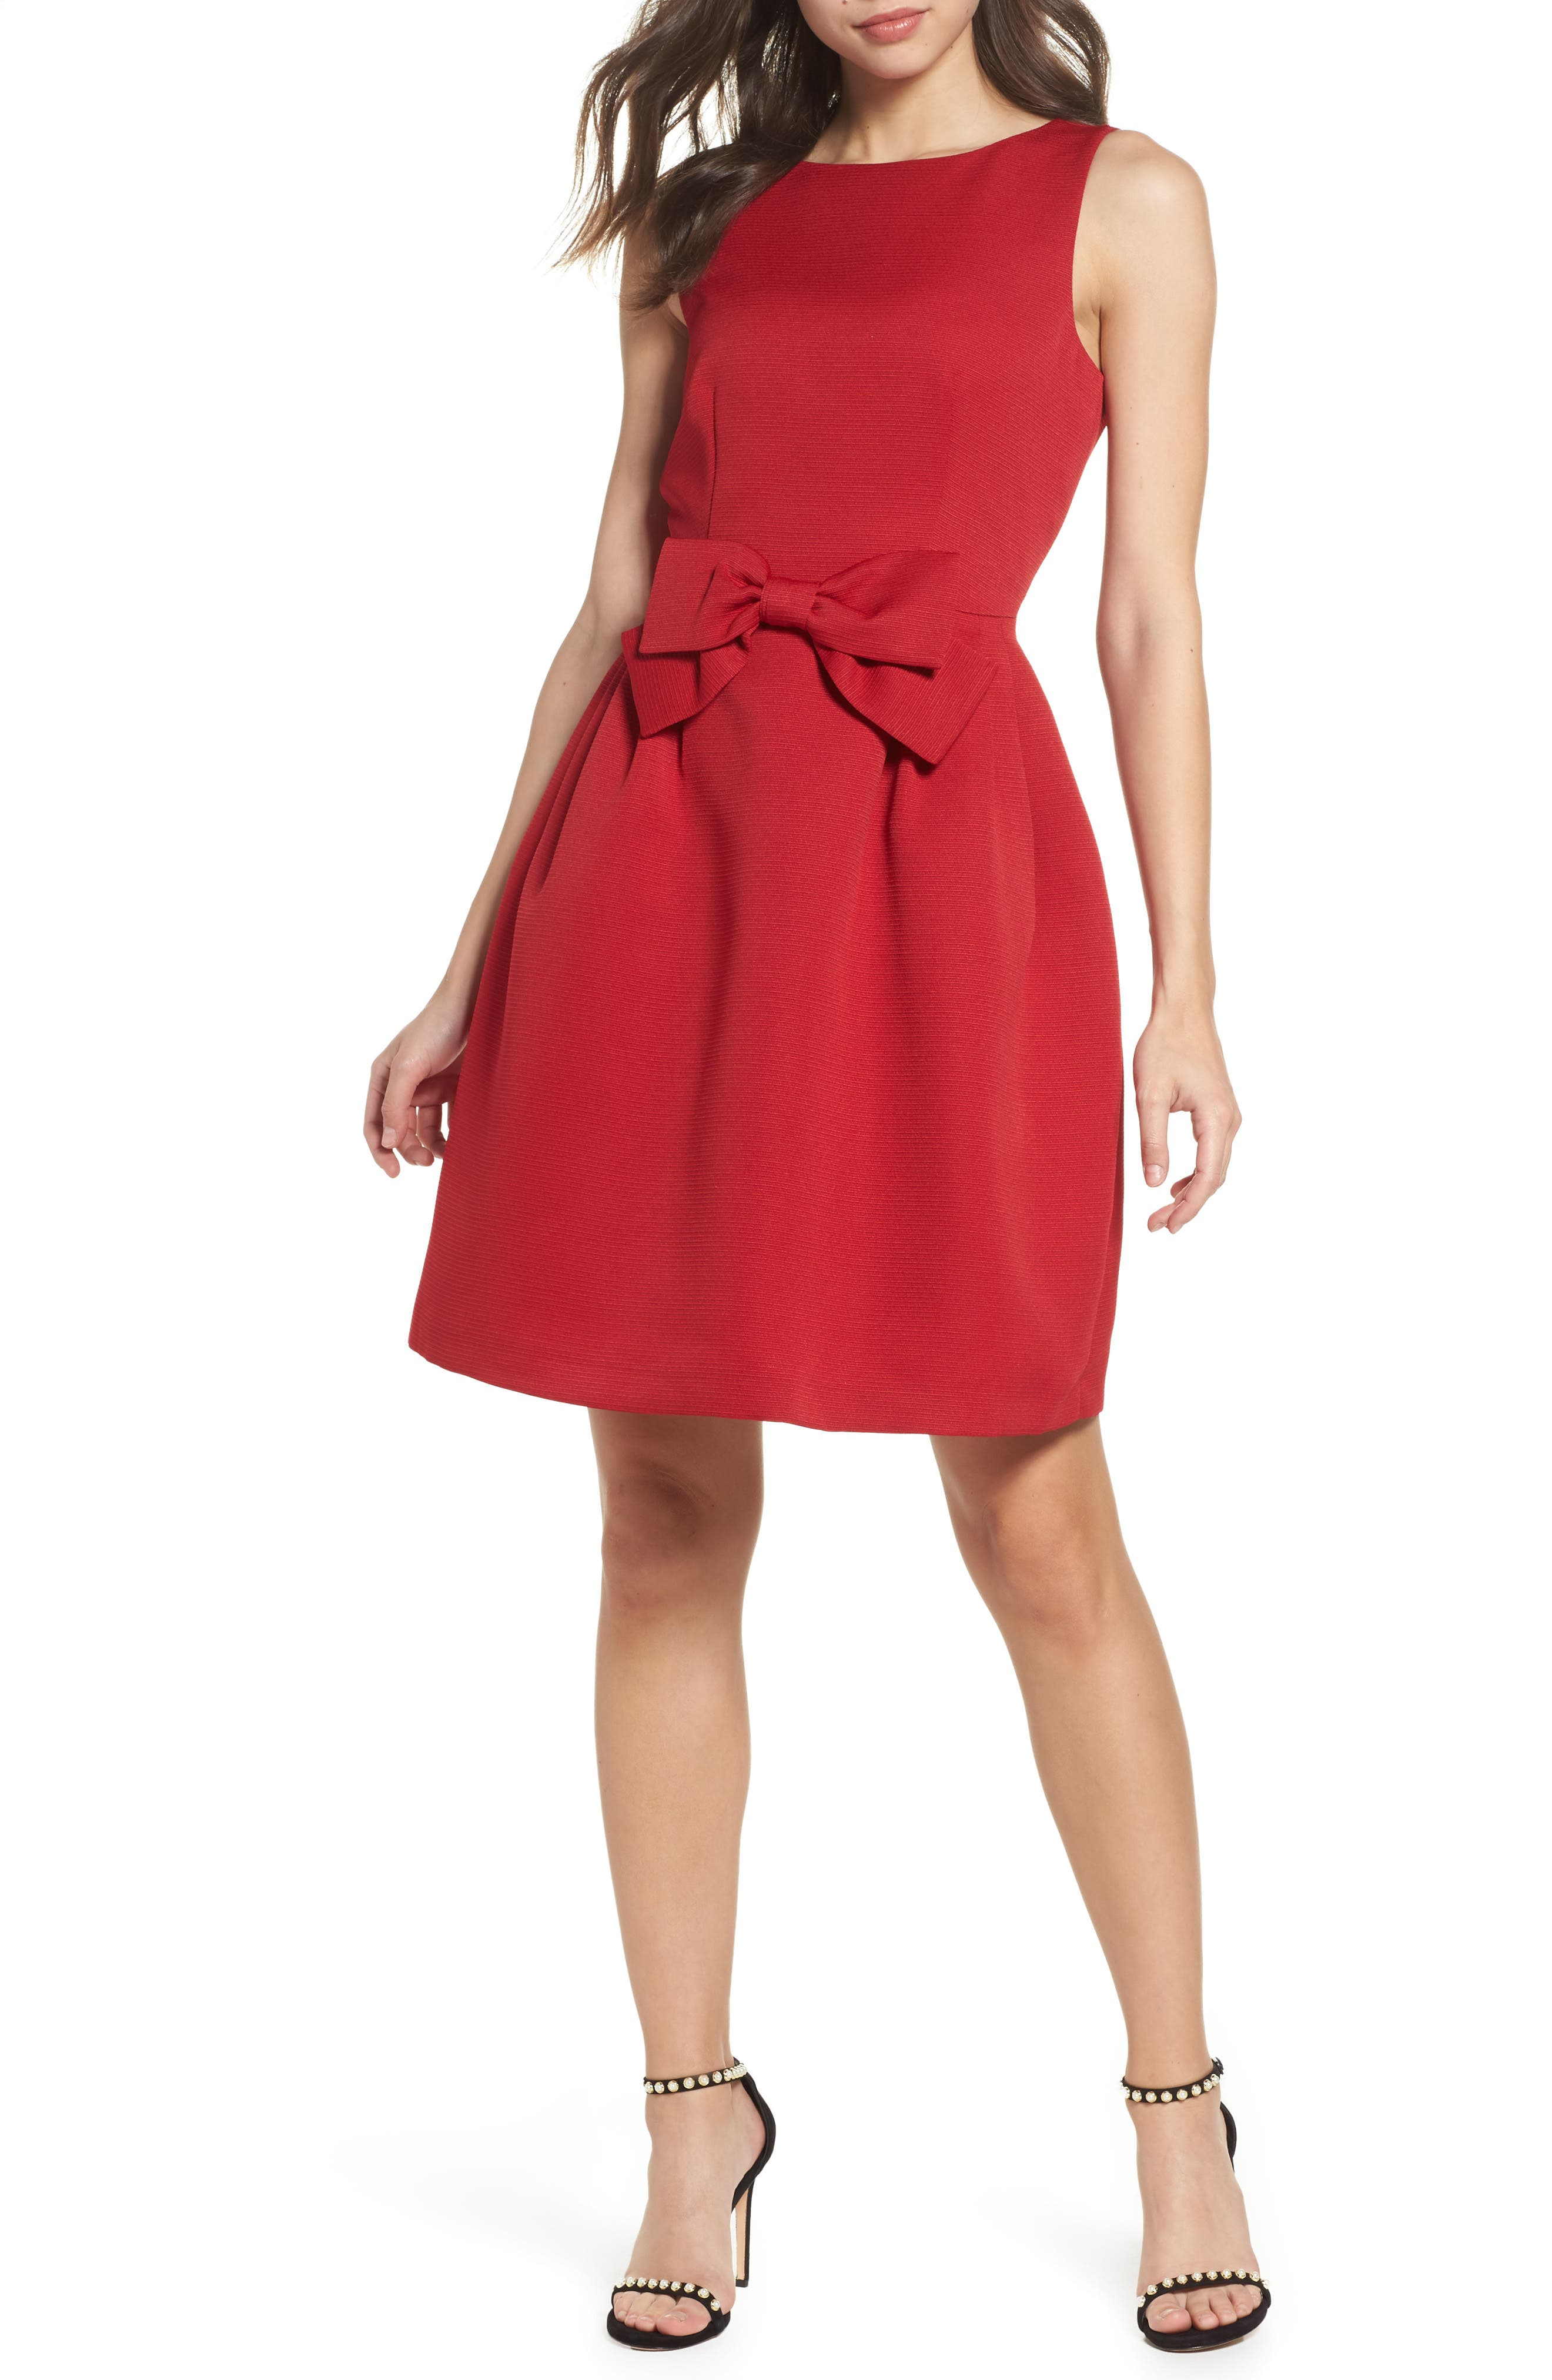 Alternate Image 1 Selected - Tahari Bow Front A-Line Dress